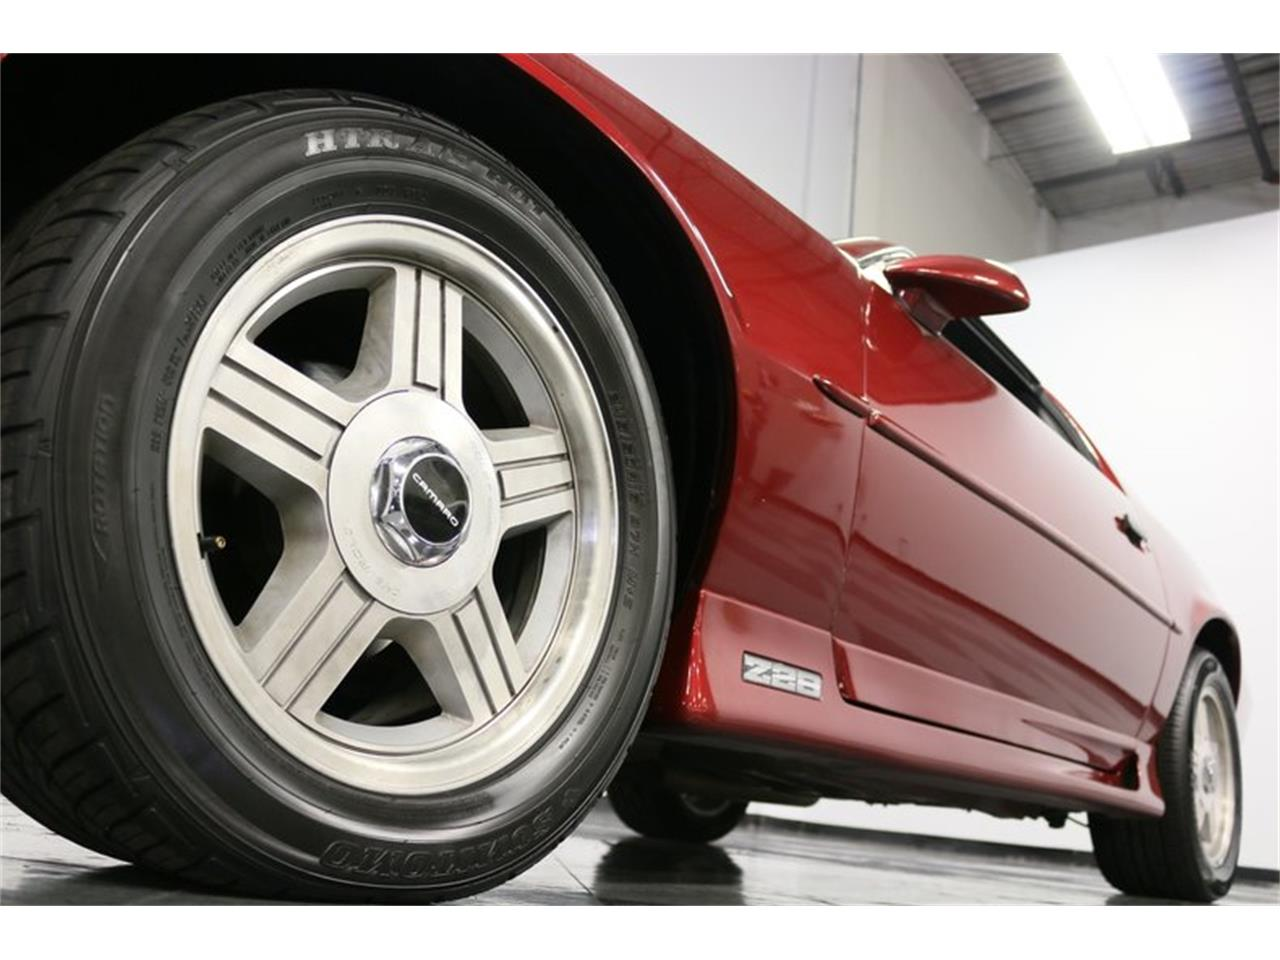 Large Picture of '91 Chevrolet Camaro located in Texas - $11,995.00 Offered by Streetside Classics - Dallas / Fort Worth - PBLJ